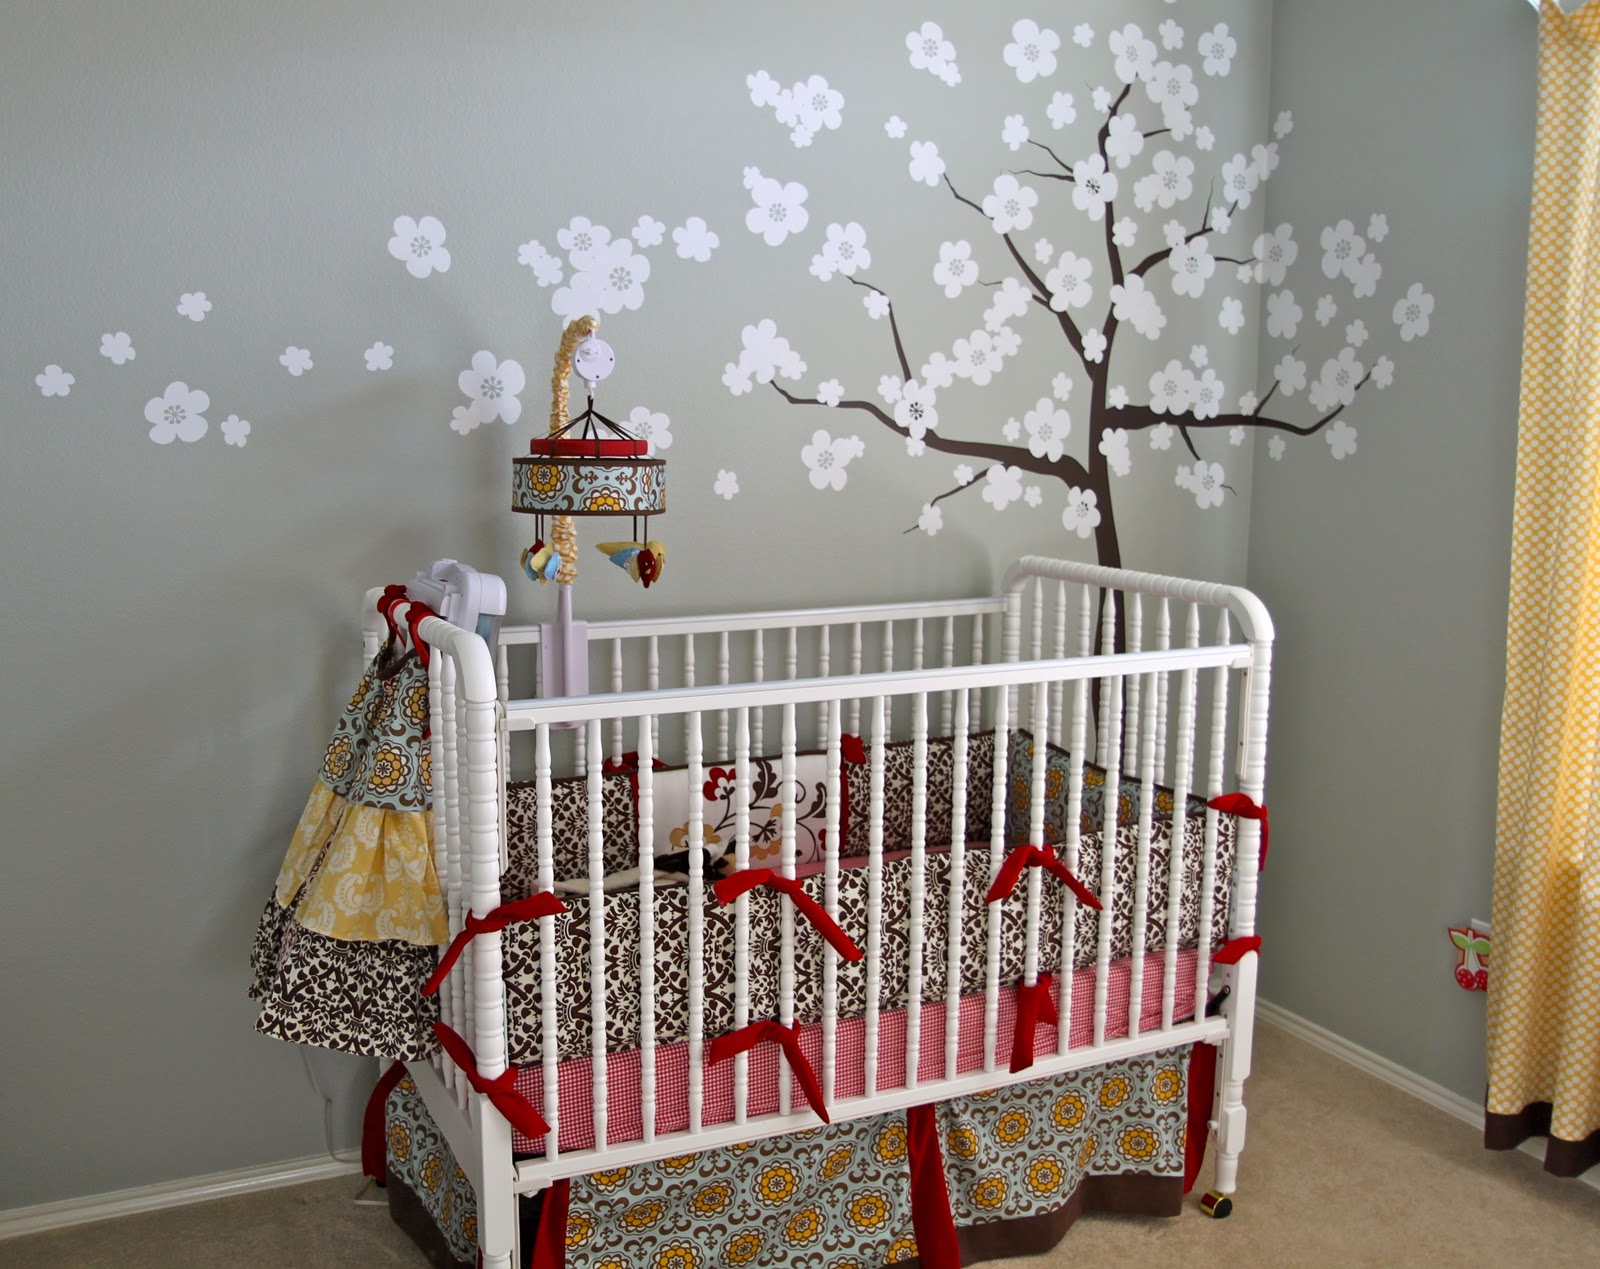 Baby nursery it 39 s quirky and so cute design dazzle - Cute baby rooms ideas ...